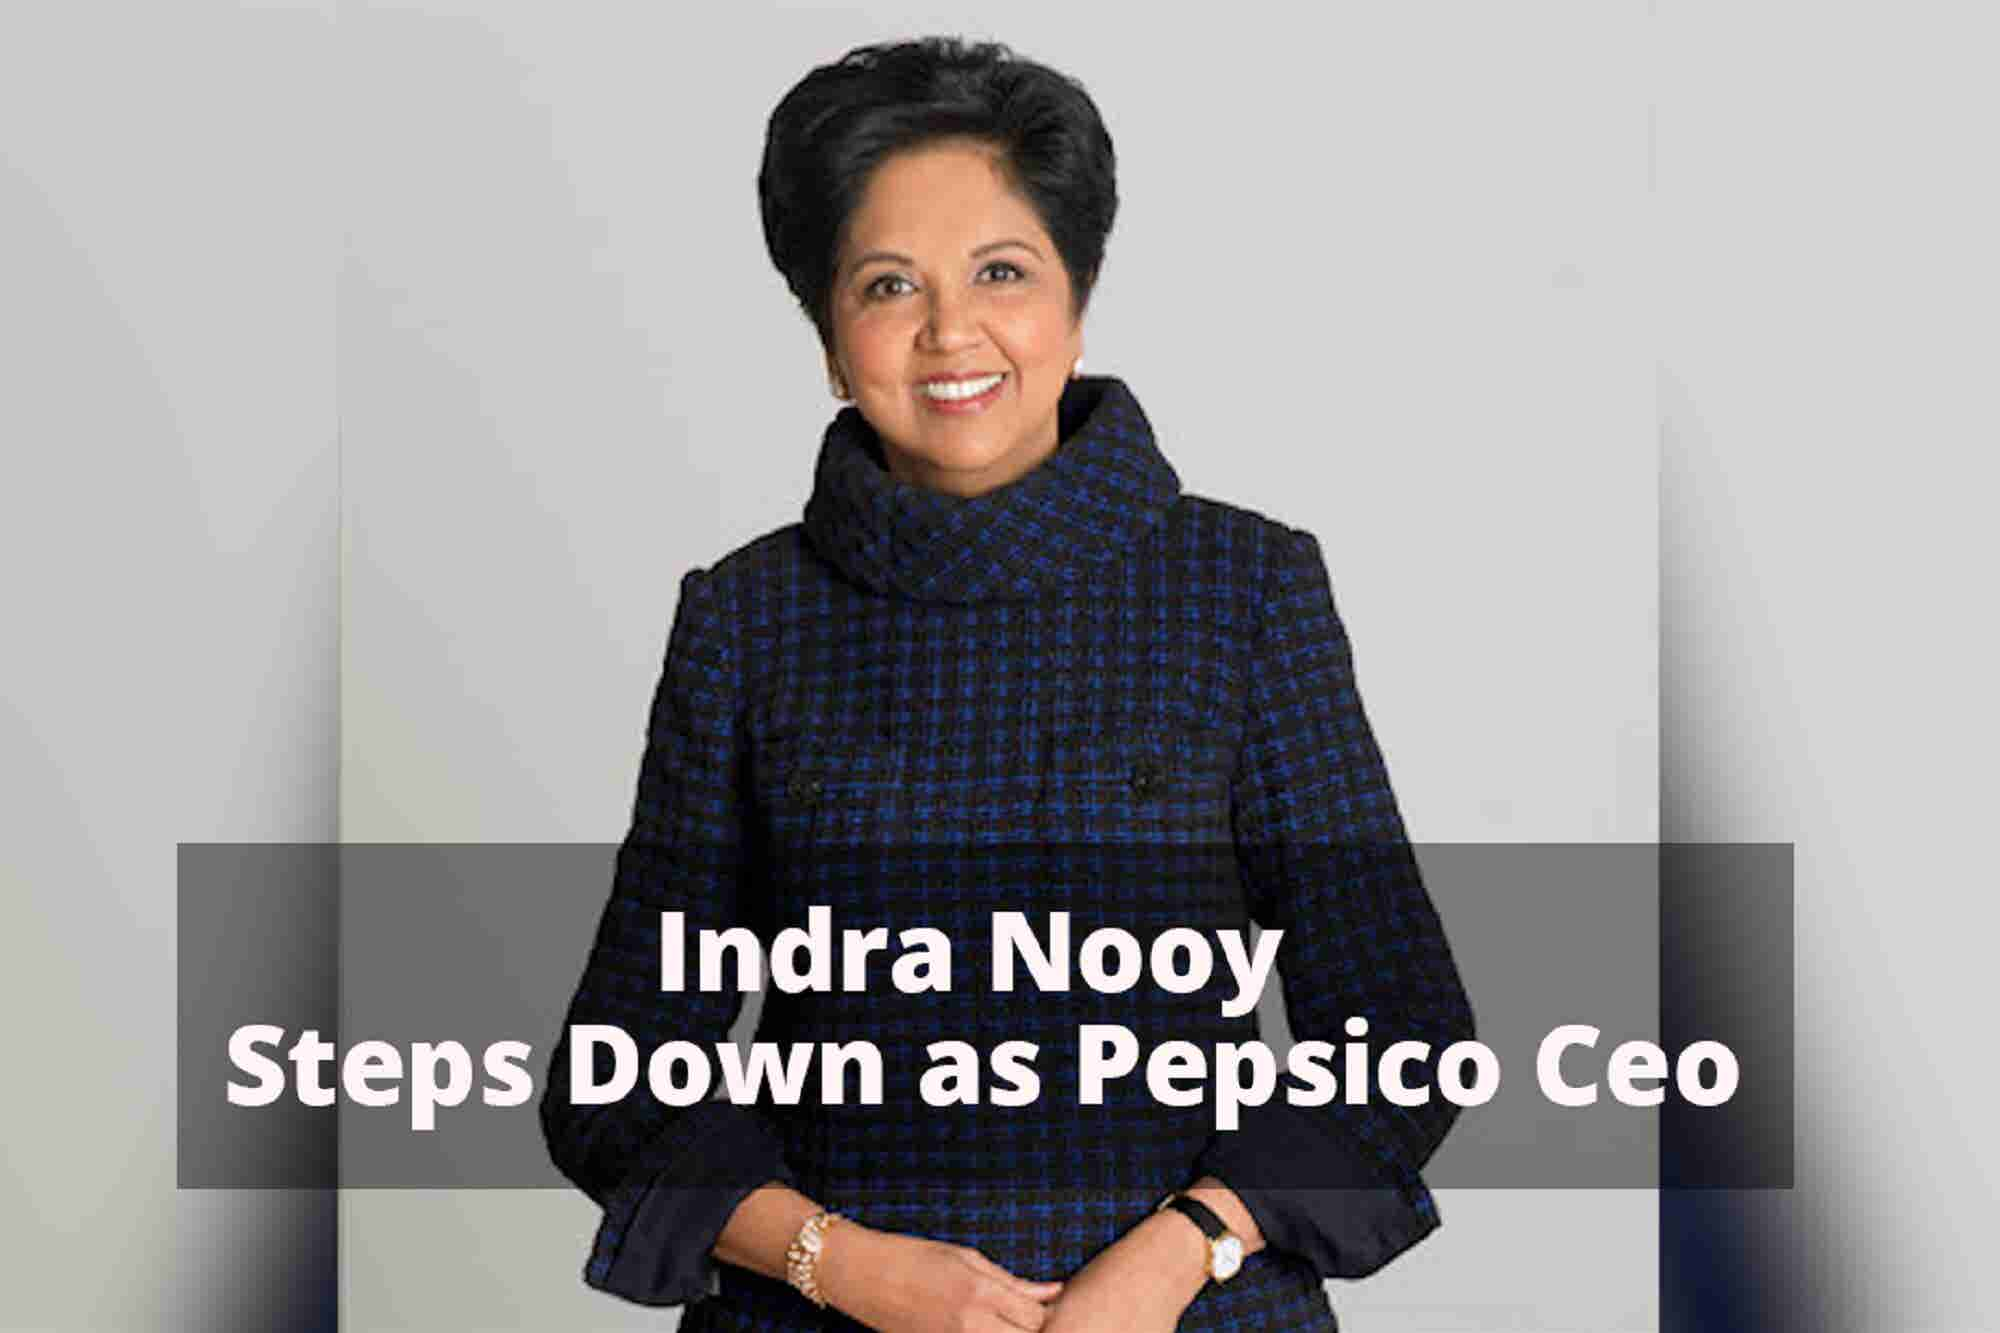 PepsiCo CEO Indra Nooyi Steps Down & India Post Payments Bank Makes Long-Awaited Debut: 4 Things to Know Today